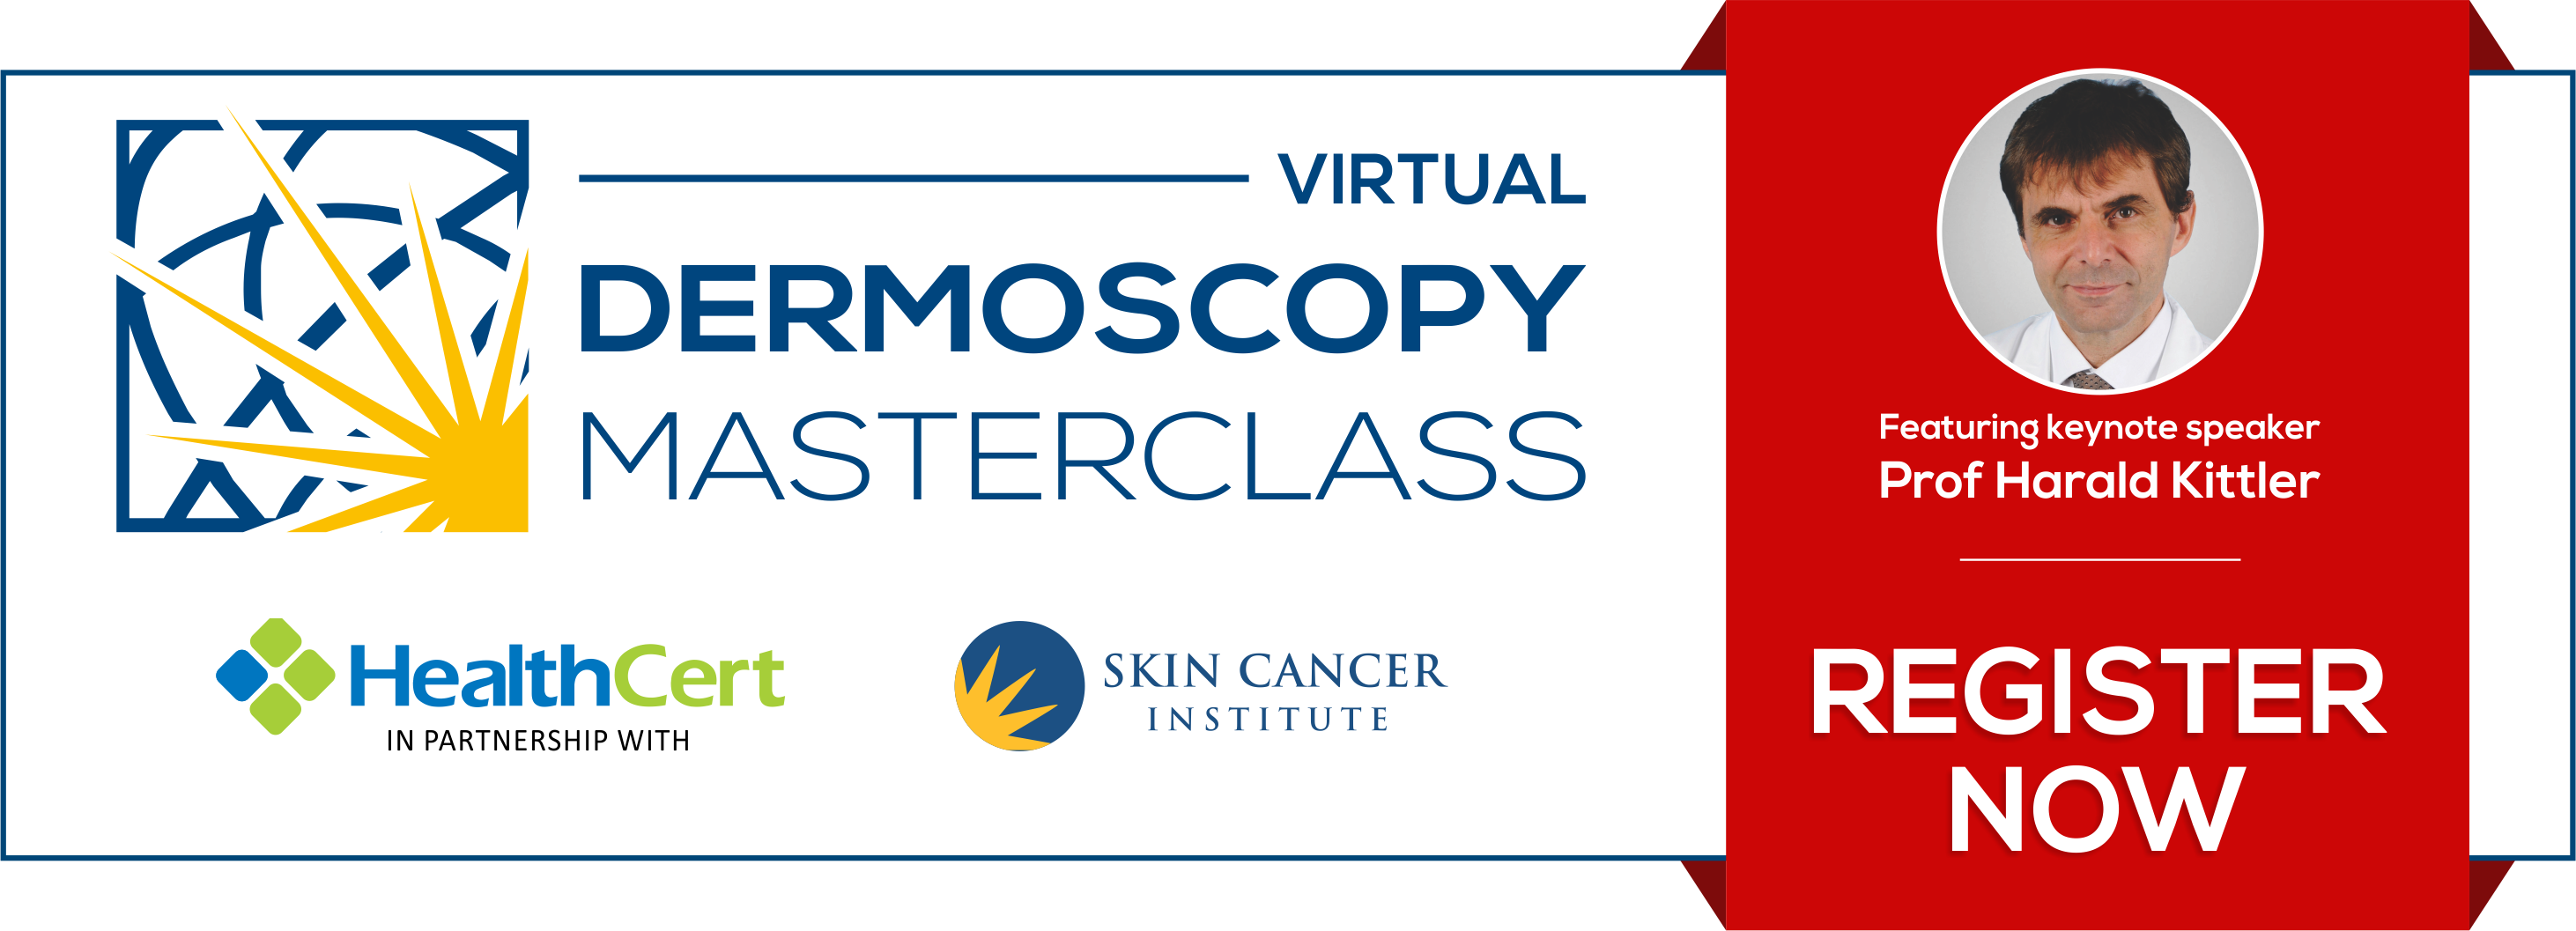 2020 Dermoscopy Masterclass Header